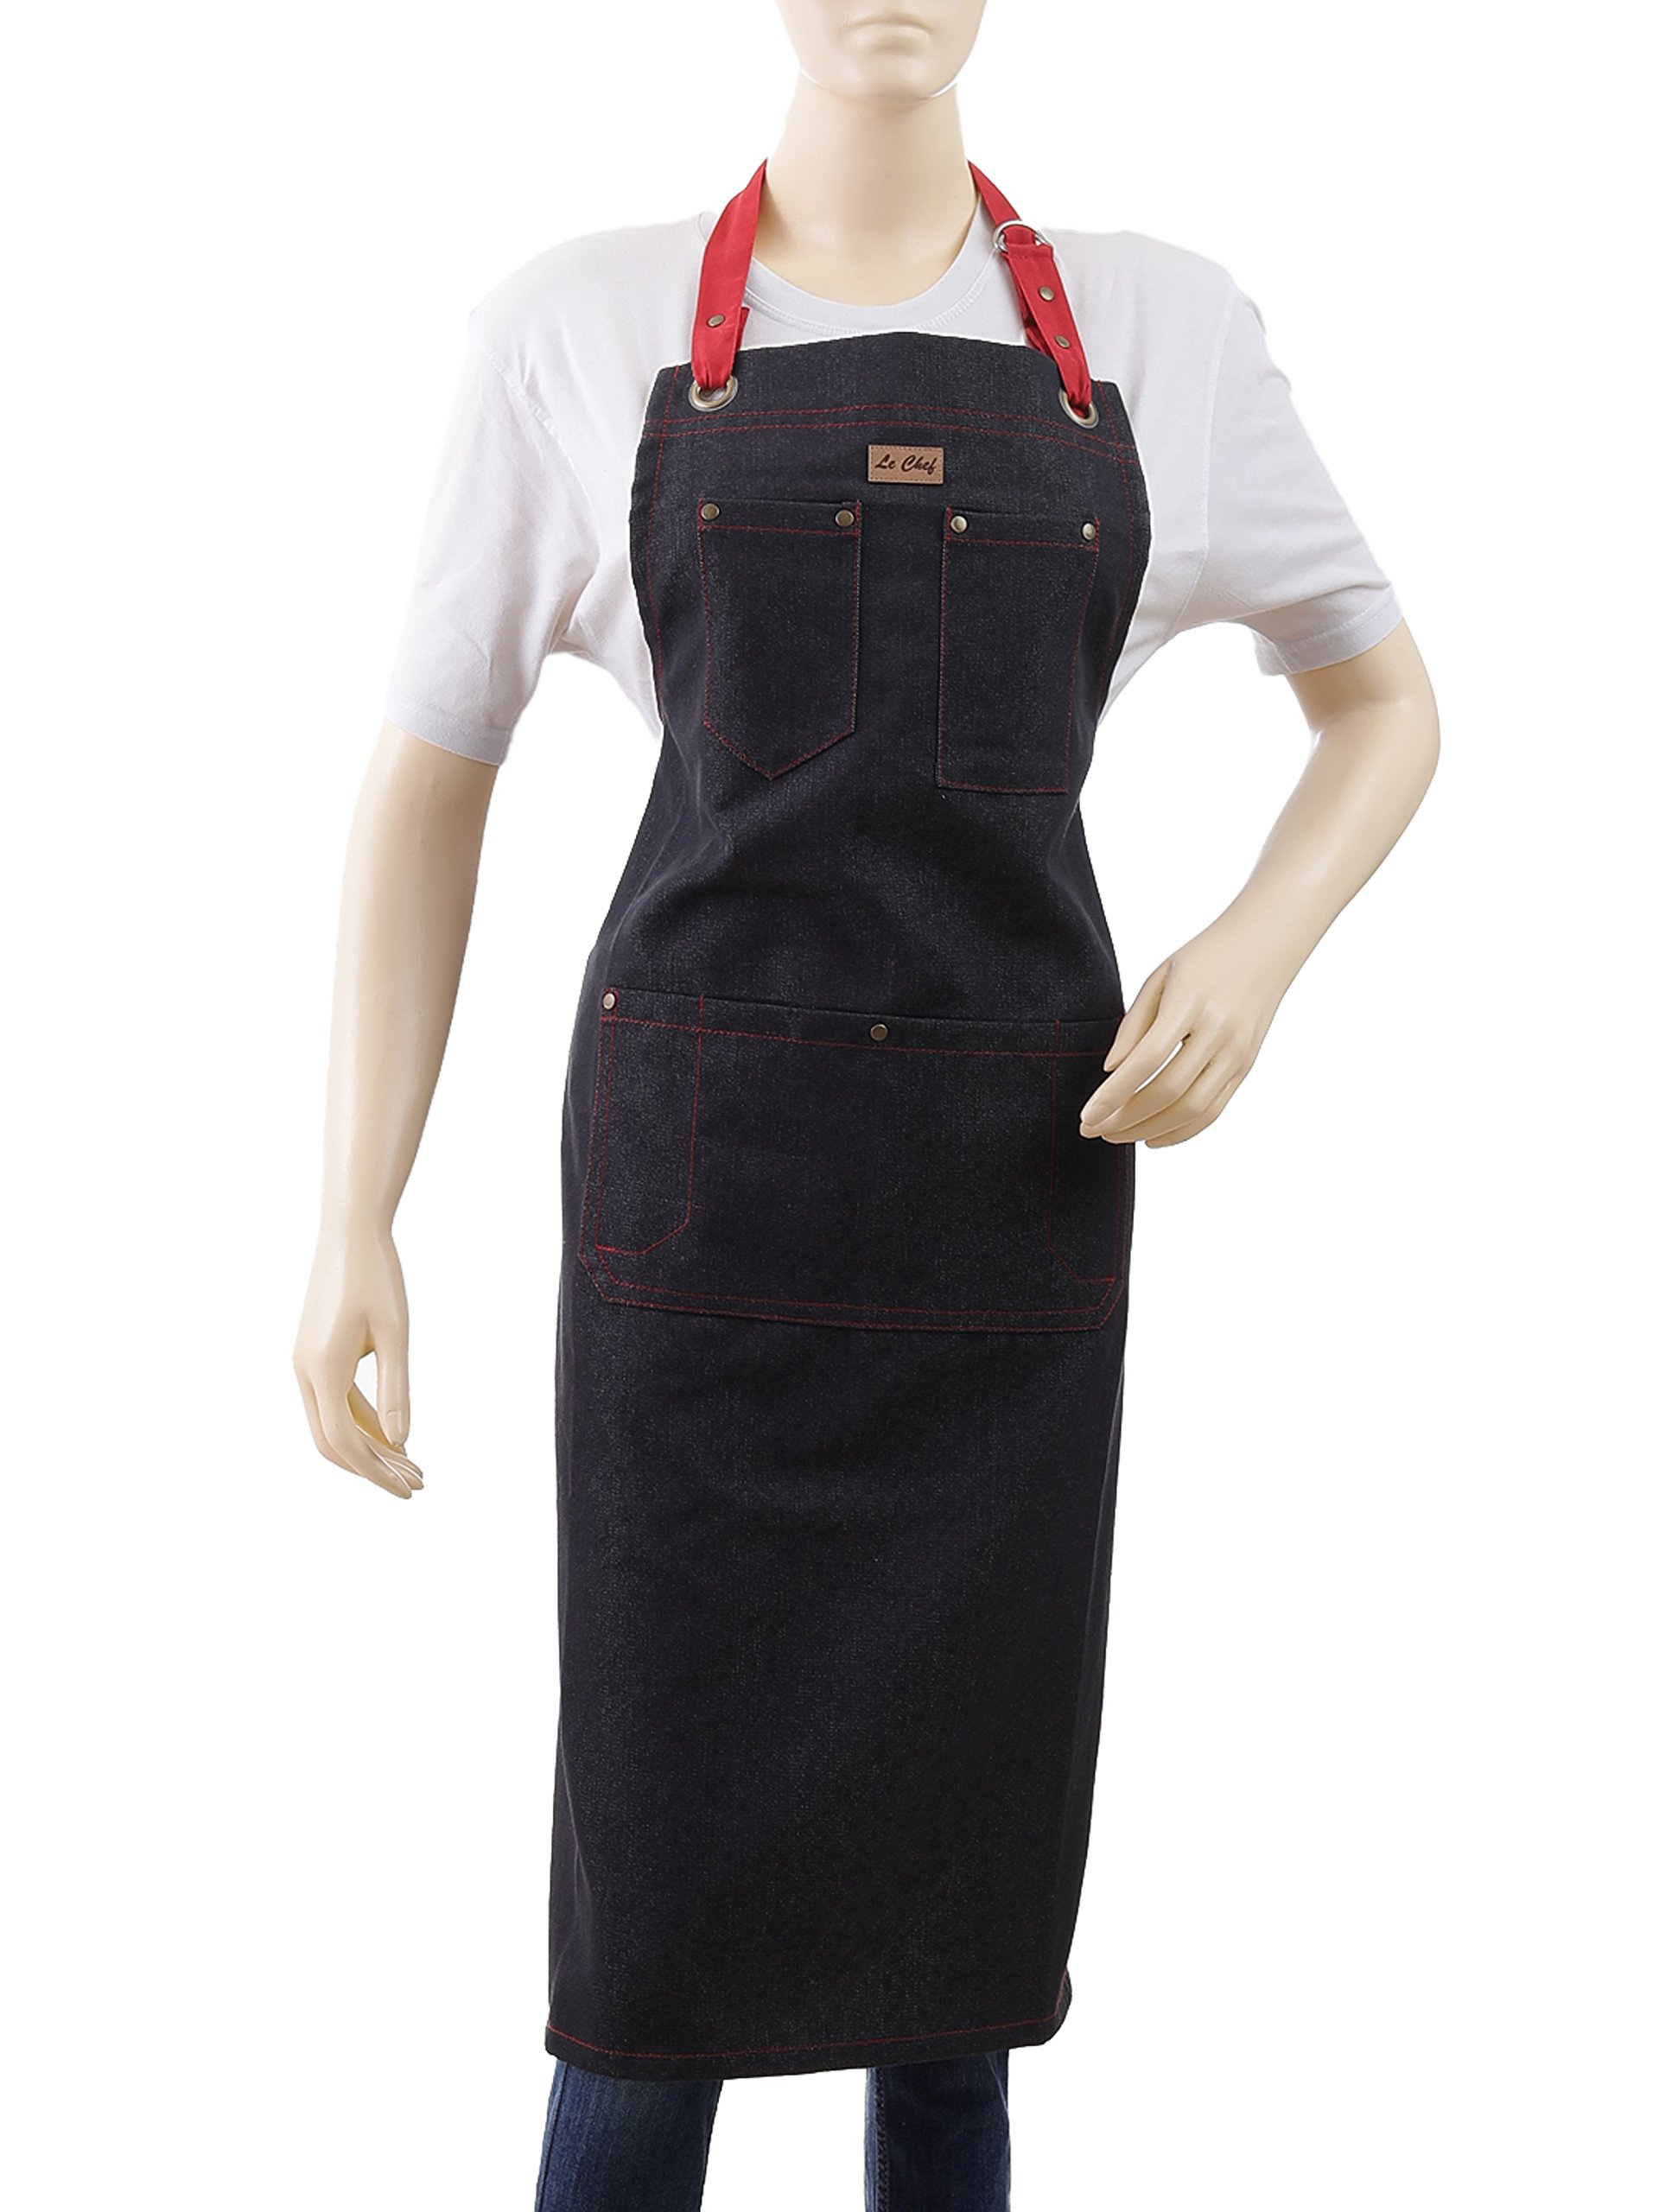 Denim Apron for Women & Men, Kitchen Apron With Top & Centre Pockets, 27 X 32 Inch, Adjustable Red Ties With Snap Buttons & Denim Stitch